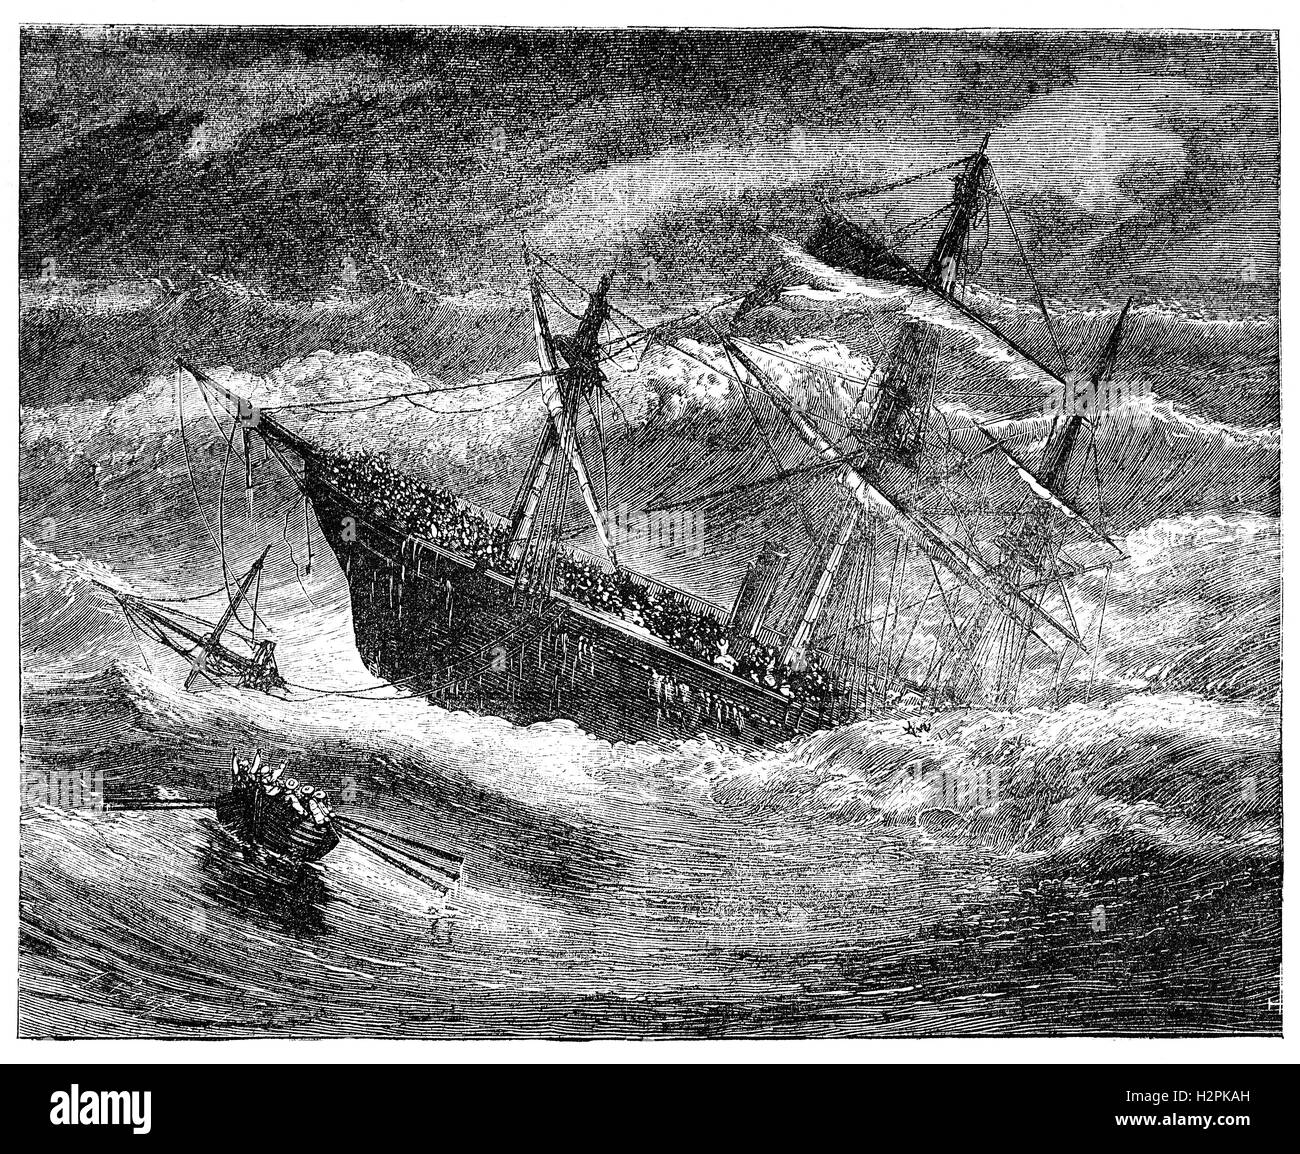 SS London was a British steamship which sank in the Bay of Biscay on 11 January 1866. The ship was travelling from - Stock Image